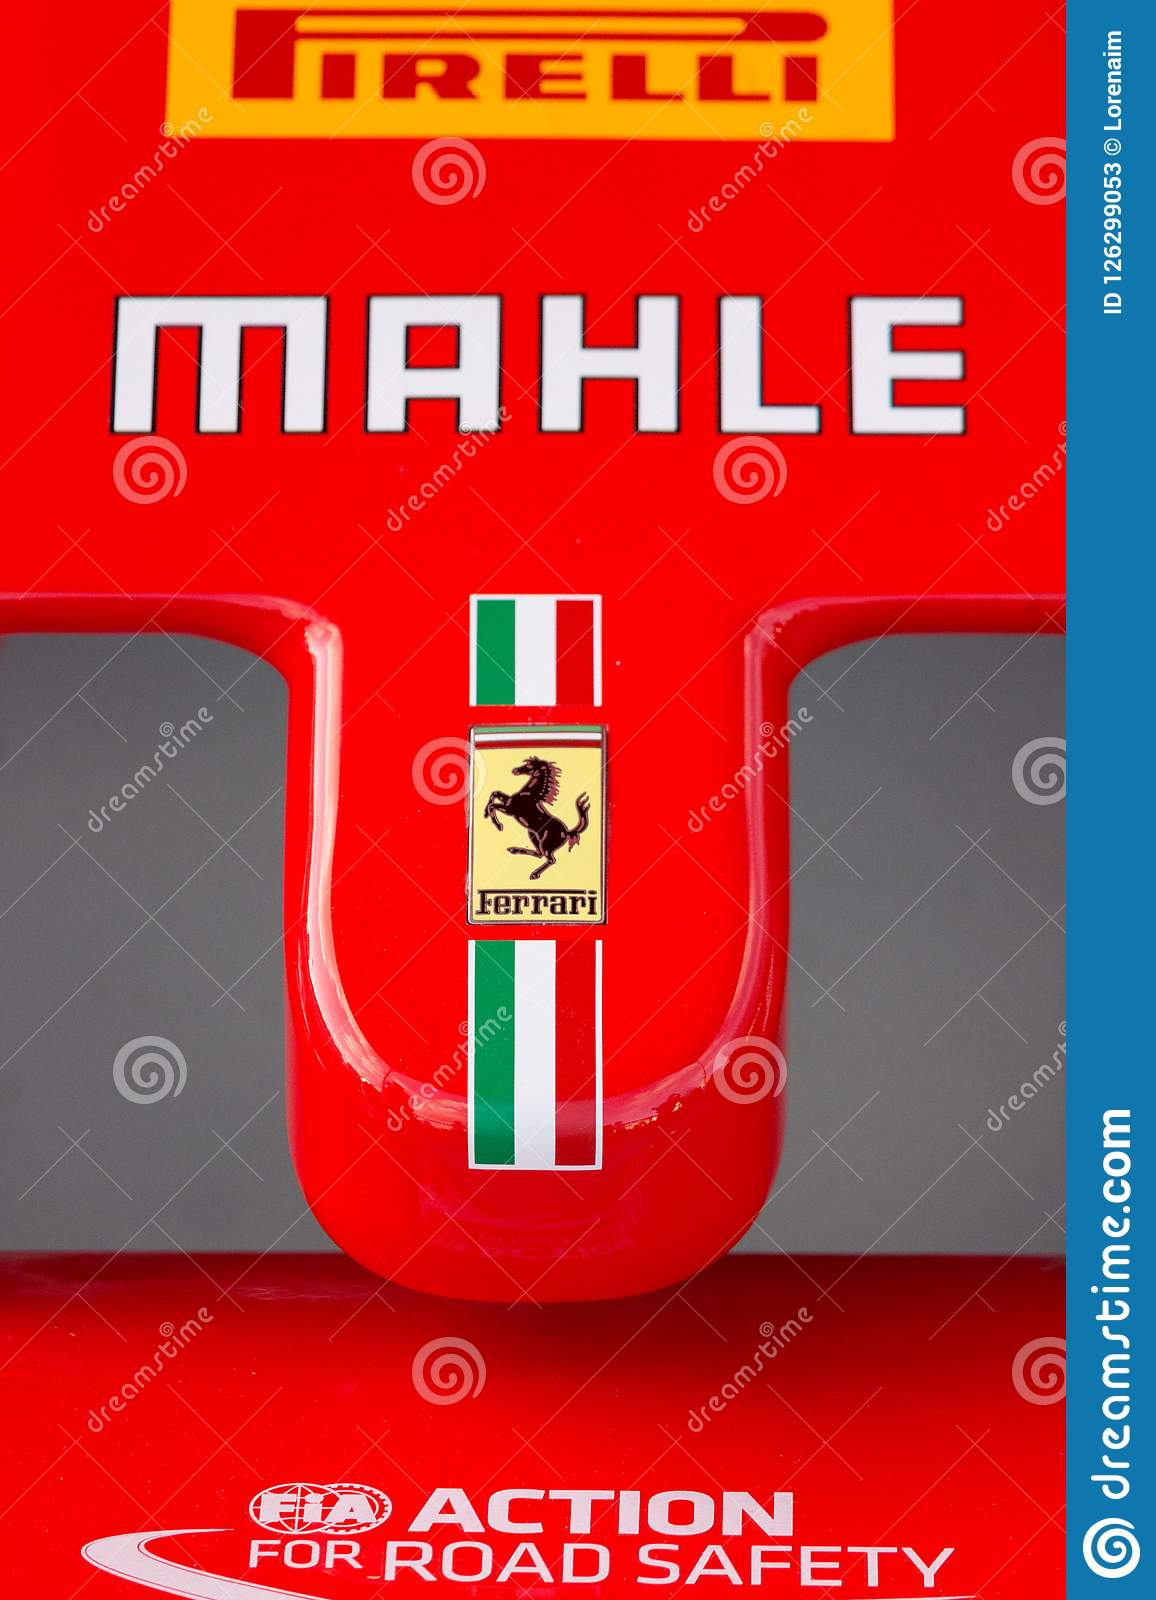 Ferrari Nose Cone From An F1 Car Editorial Stock Photo Image Of Technology Sports 126299053